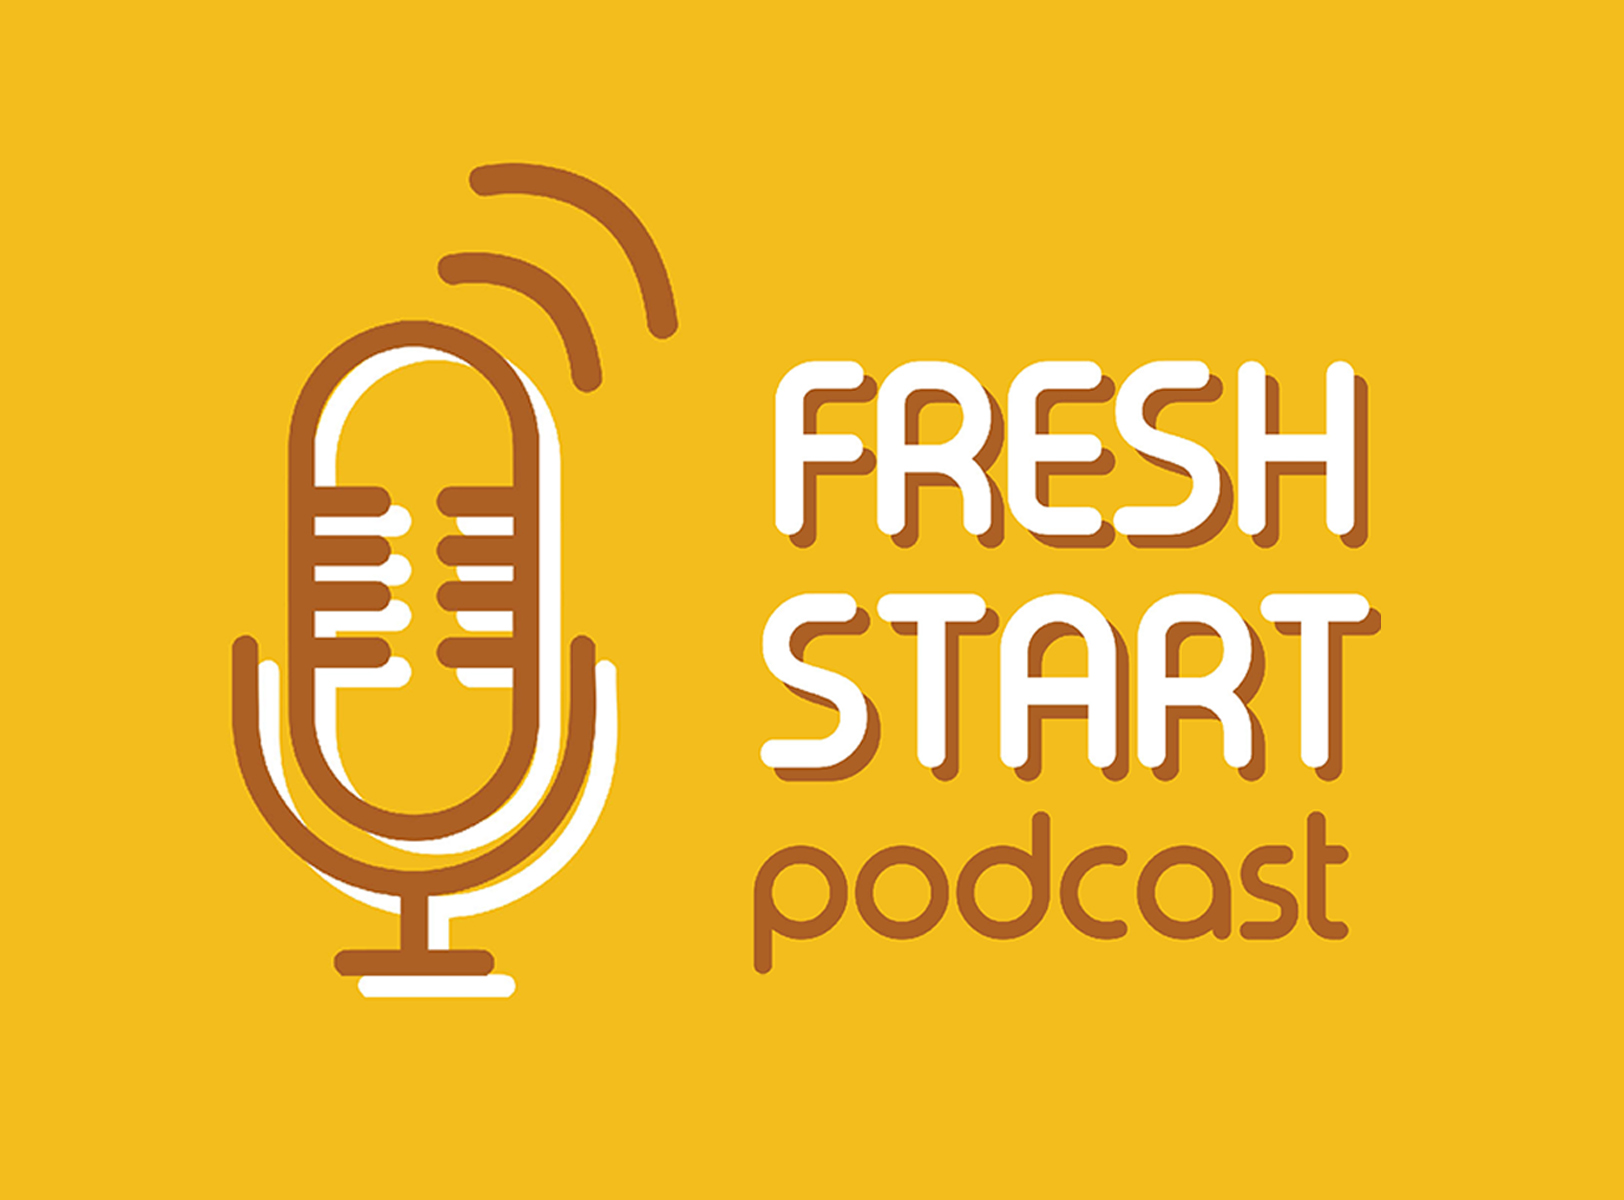 Fresh Start: Podcast News (1/28/2019 Mon.)